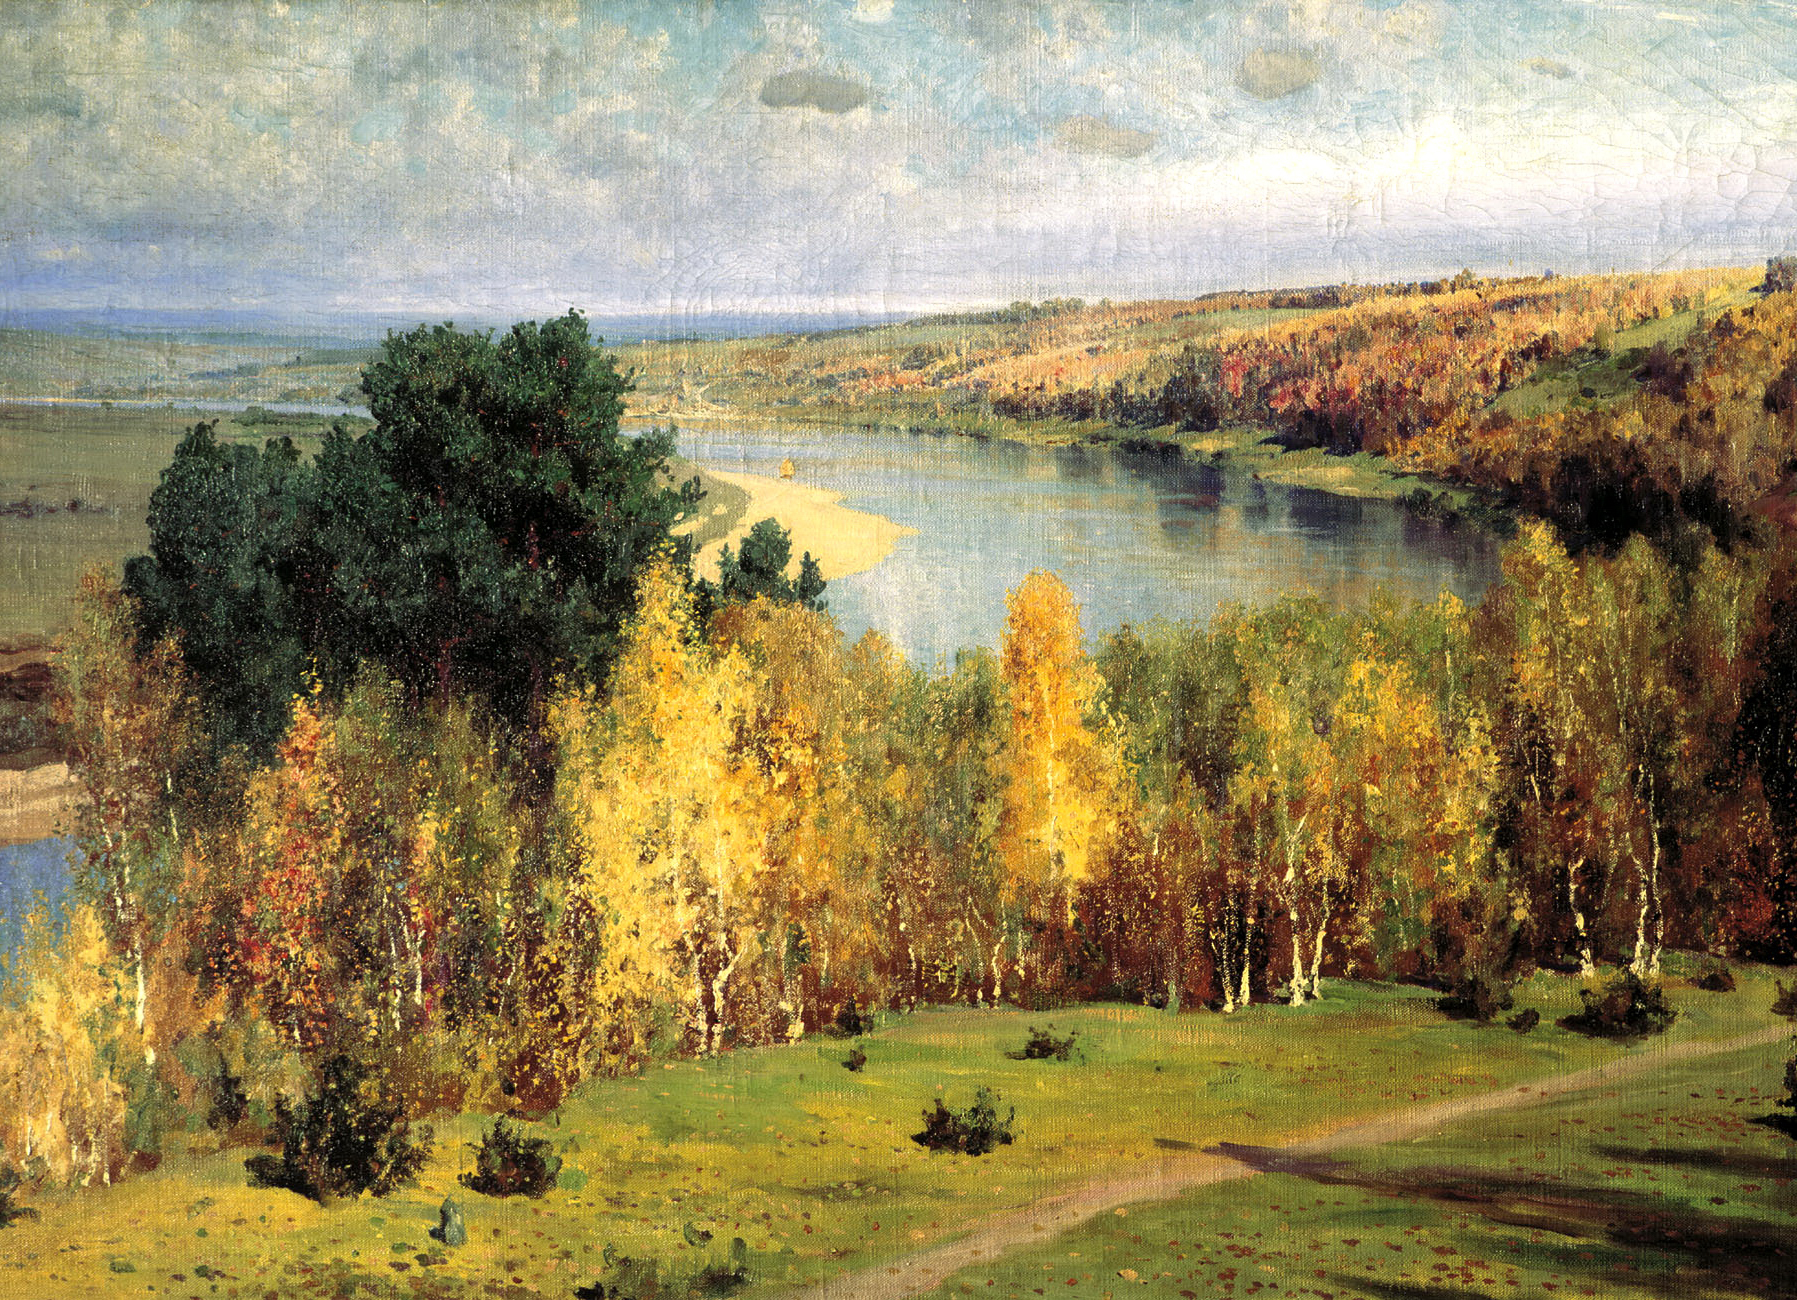 Many of the paintings by Polenov depict intimate places where he lived for a long time, including the banks of the Oka river. His painting «Golden Autumn» is no exception, and ranks as one of the artist's most important works. // Vasily Polenov, «Golden Autumn», 1893